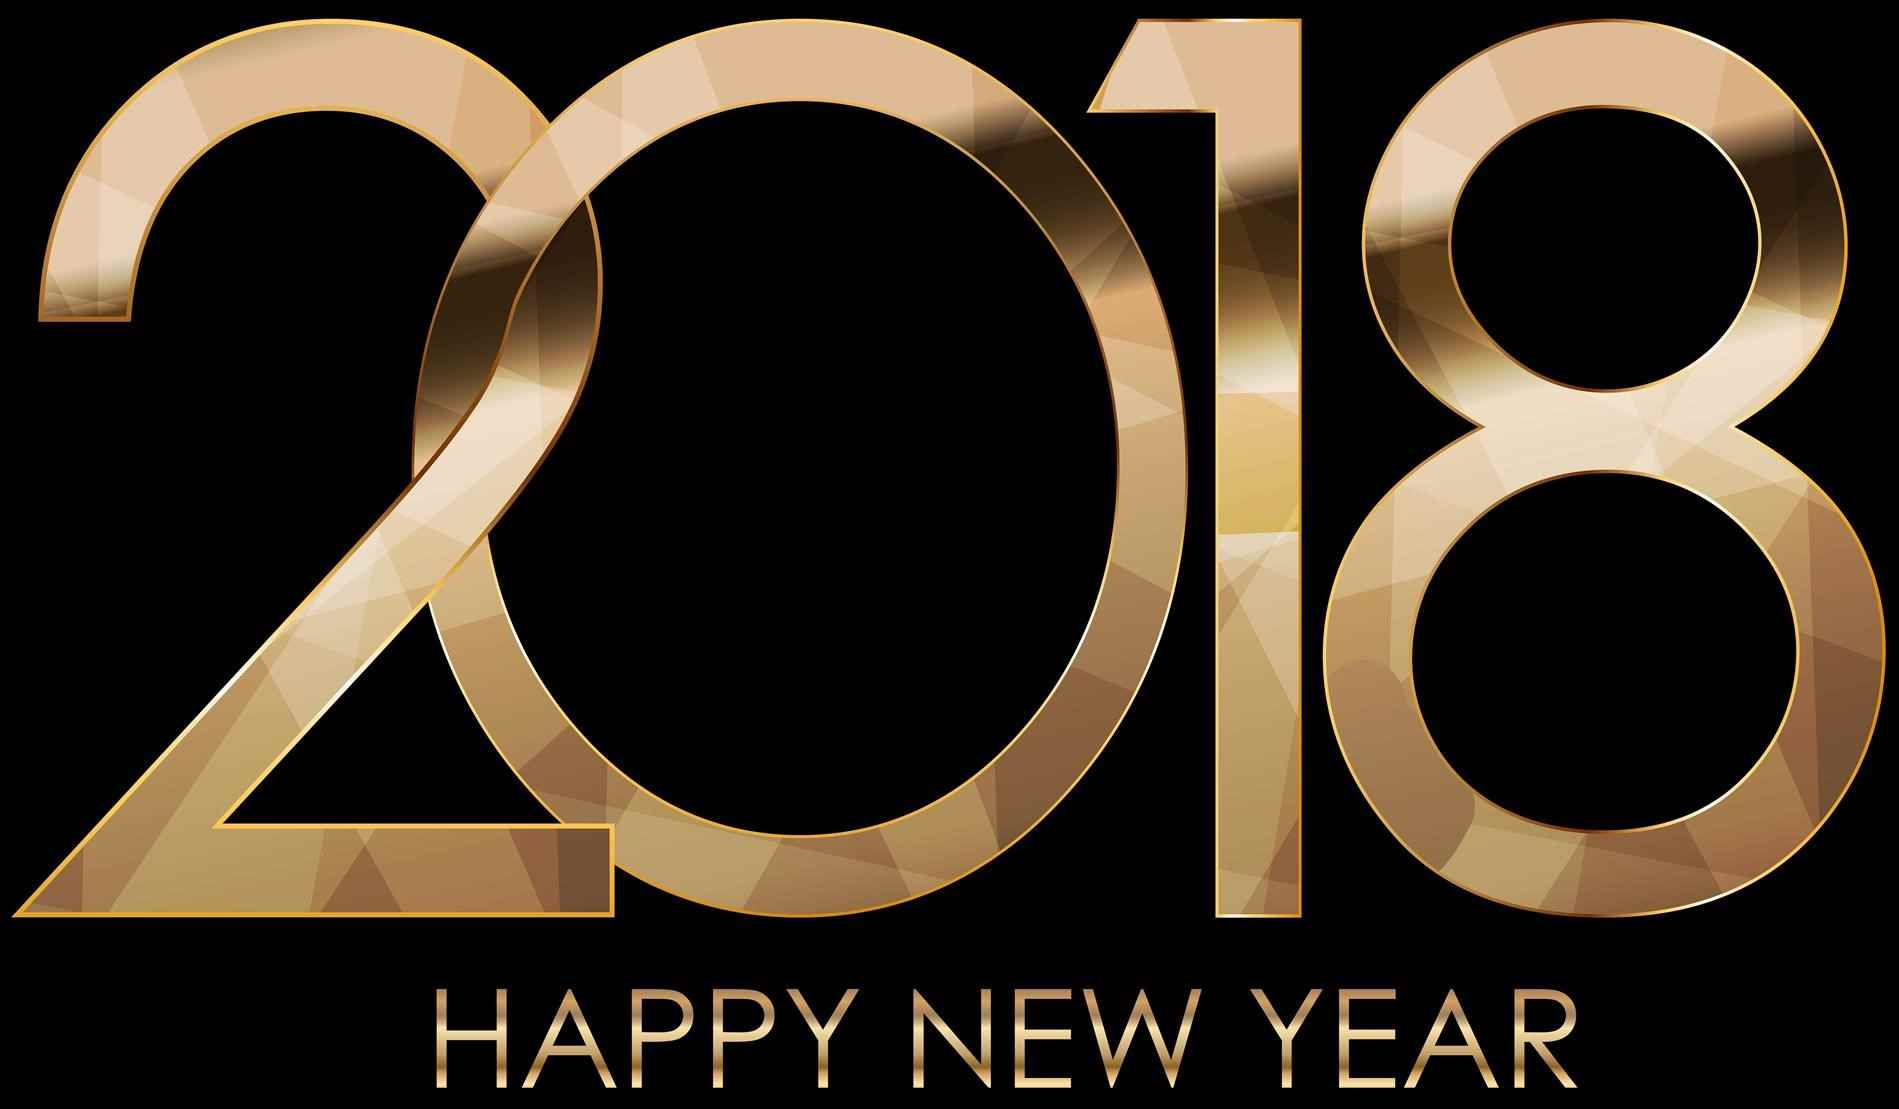 collection images images happy new year 2018 png status messages status happy new year 2018 png